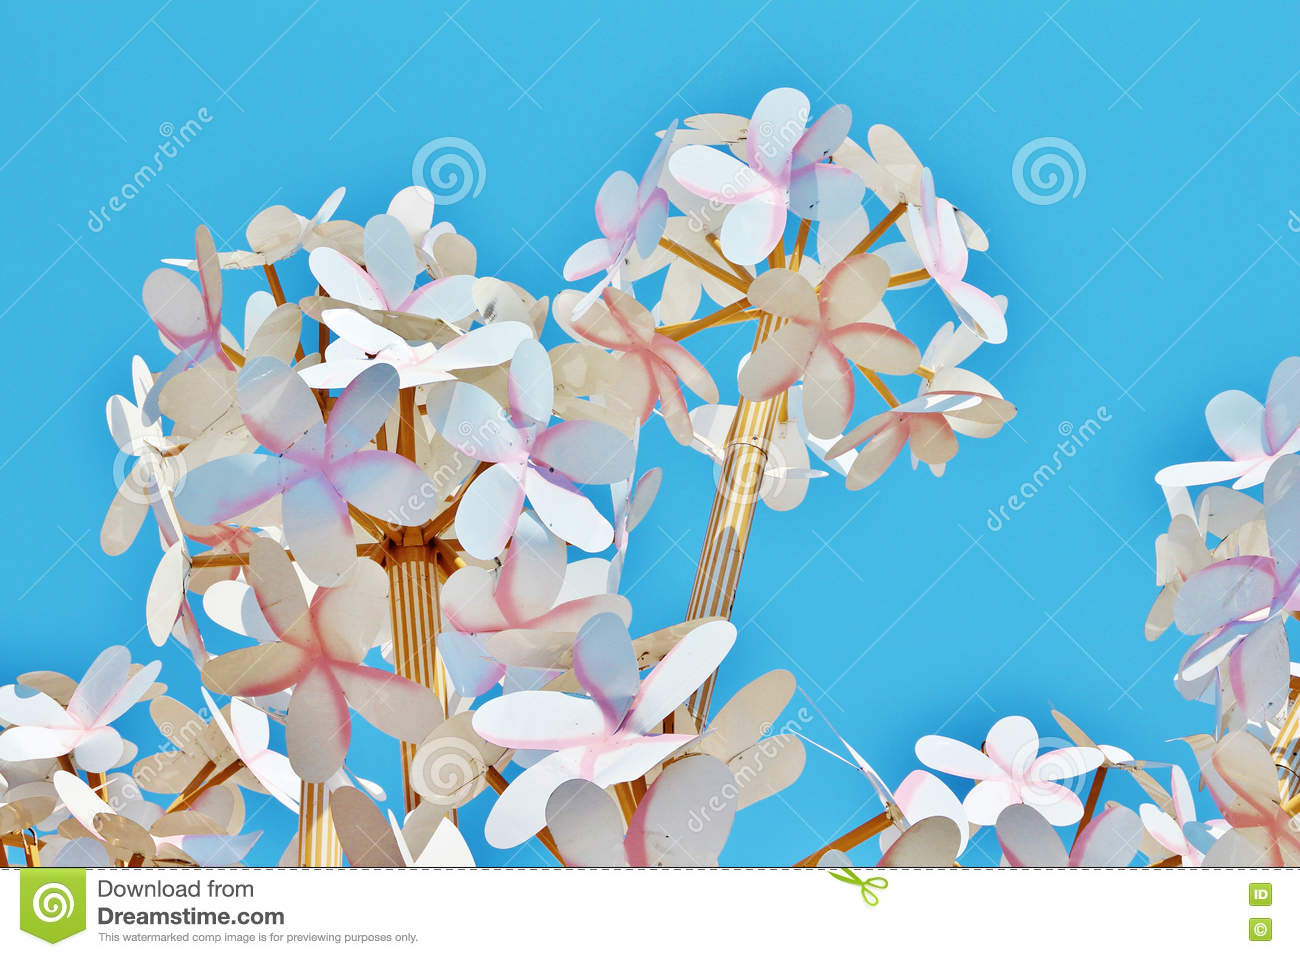 Homemade paper flowers on a background of bright blue sky stock download comp mightylinksfo